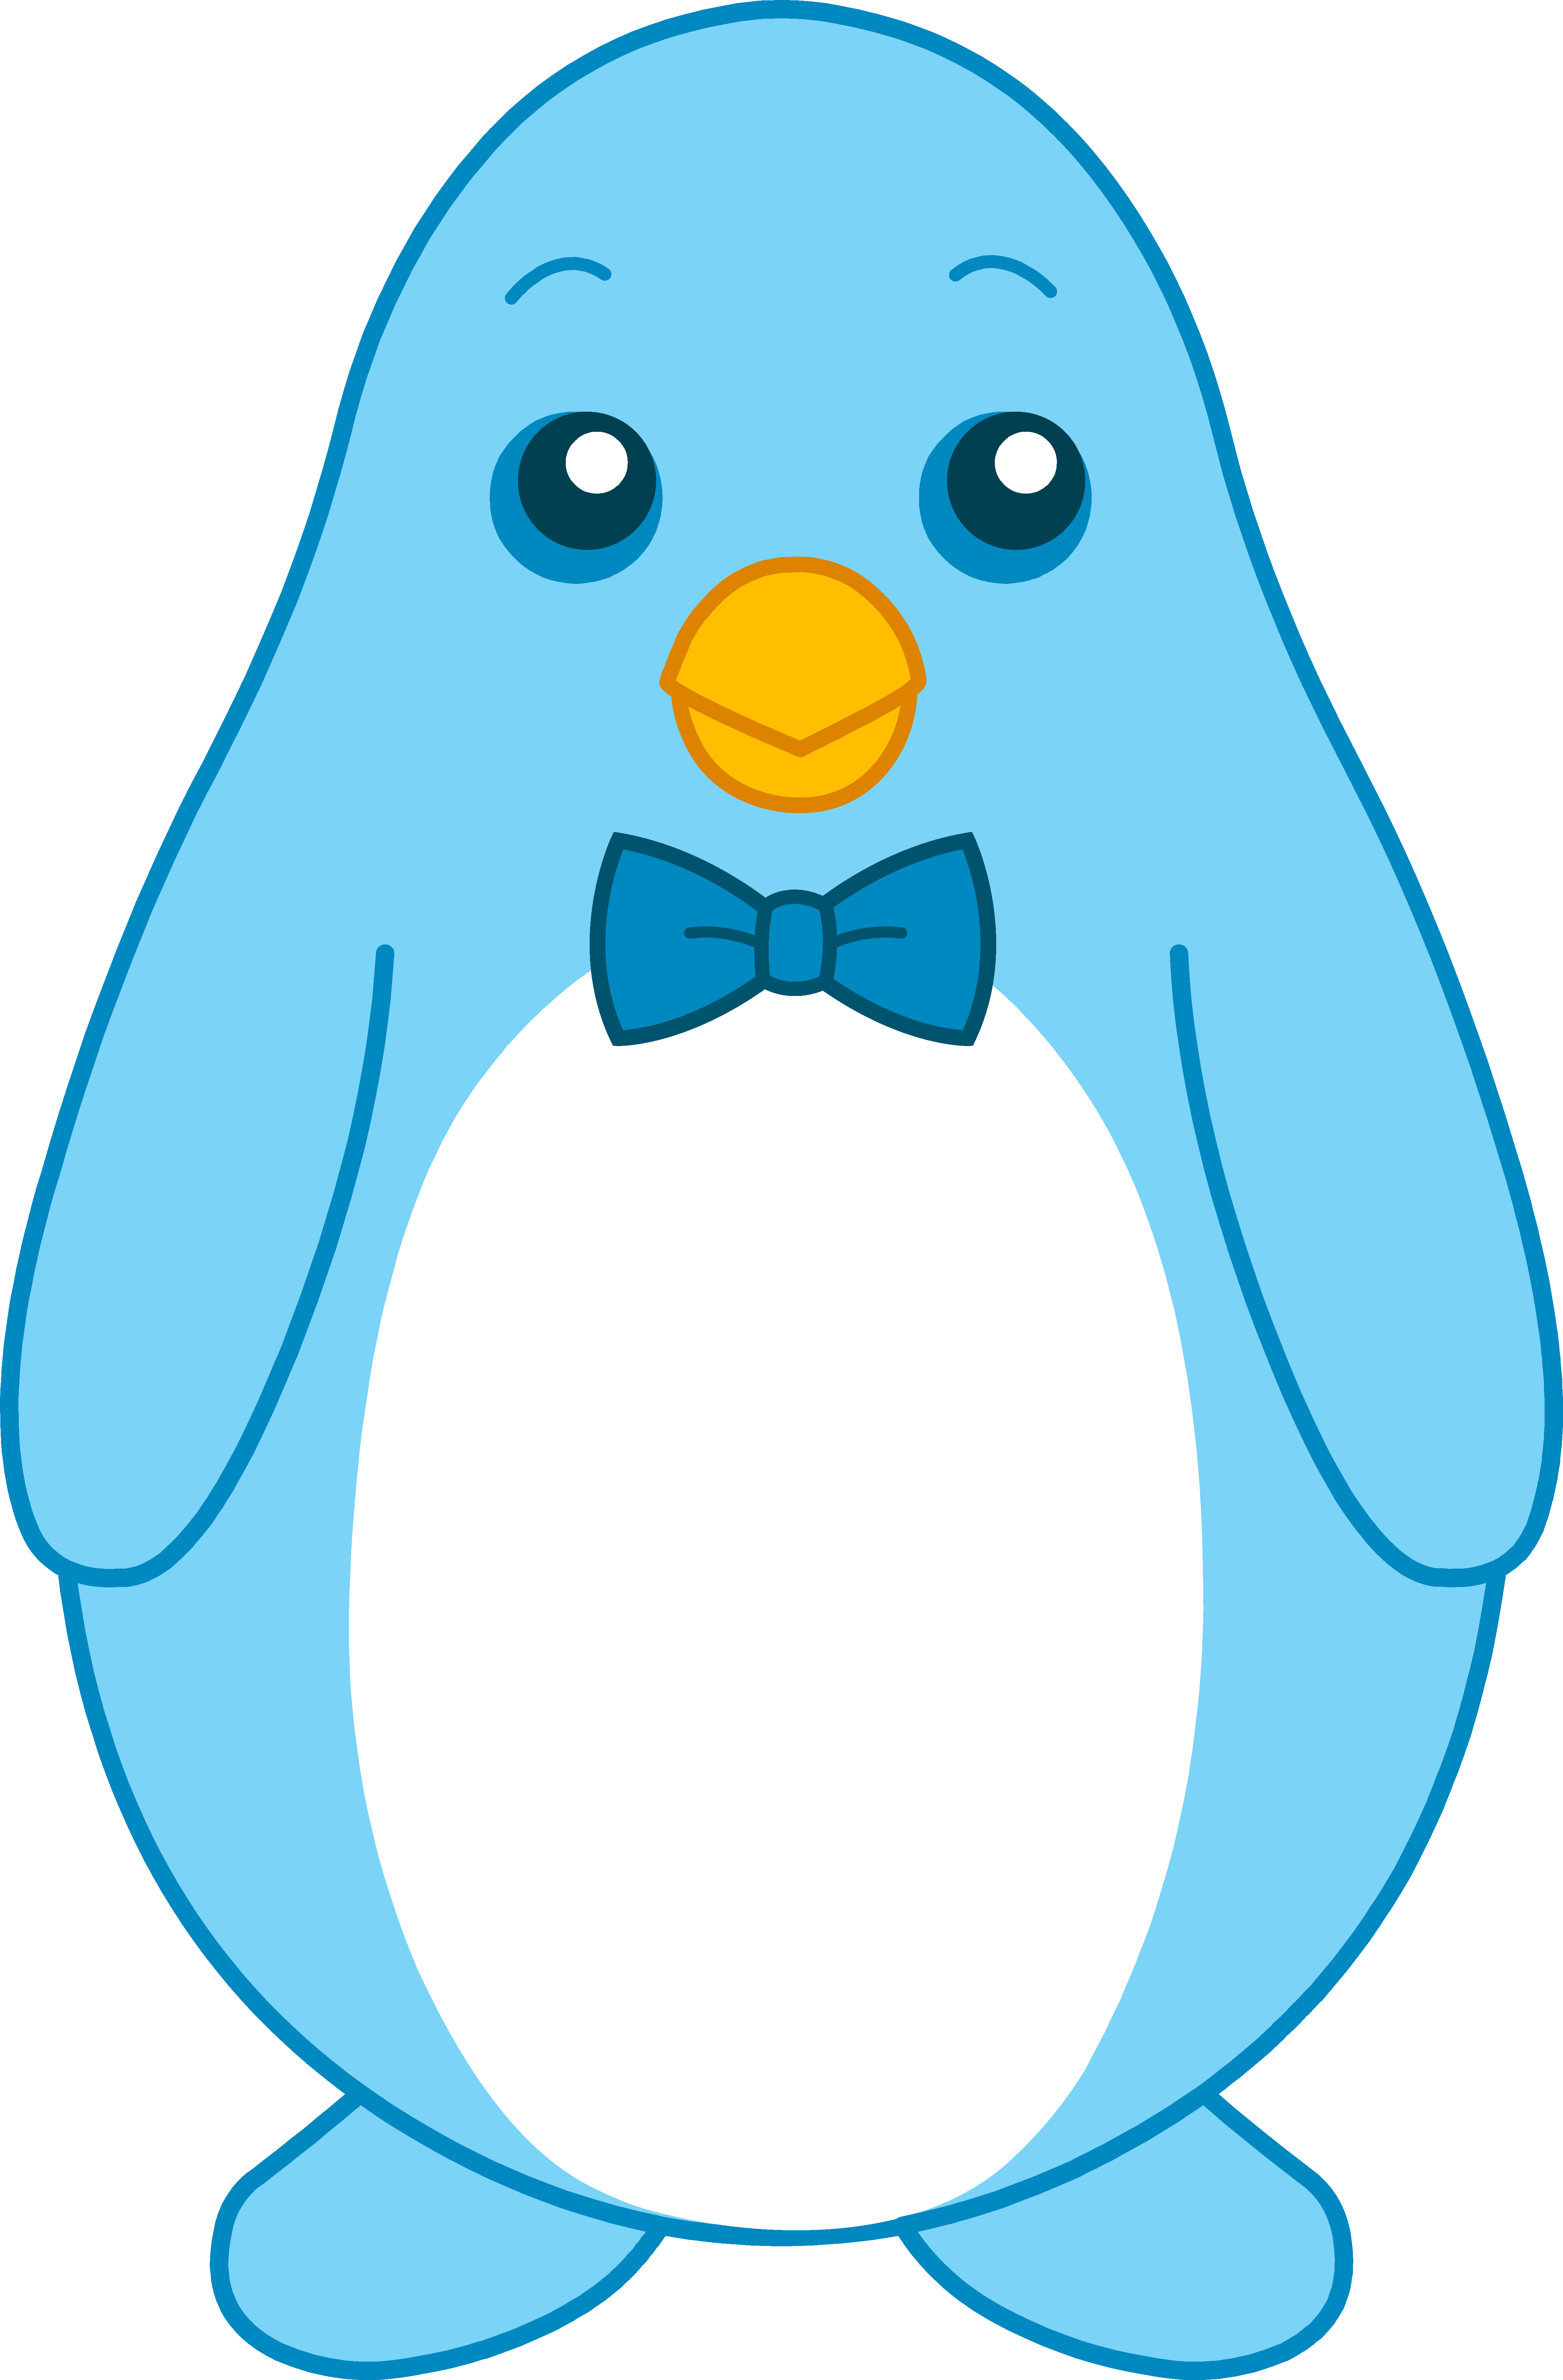 Cute animated baby penguins